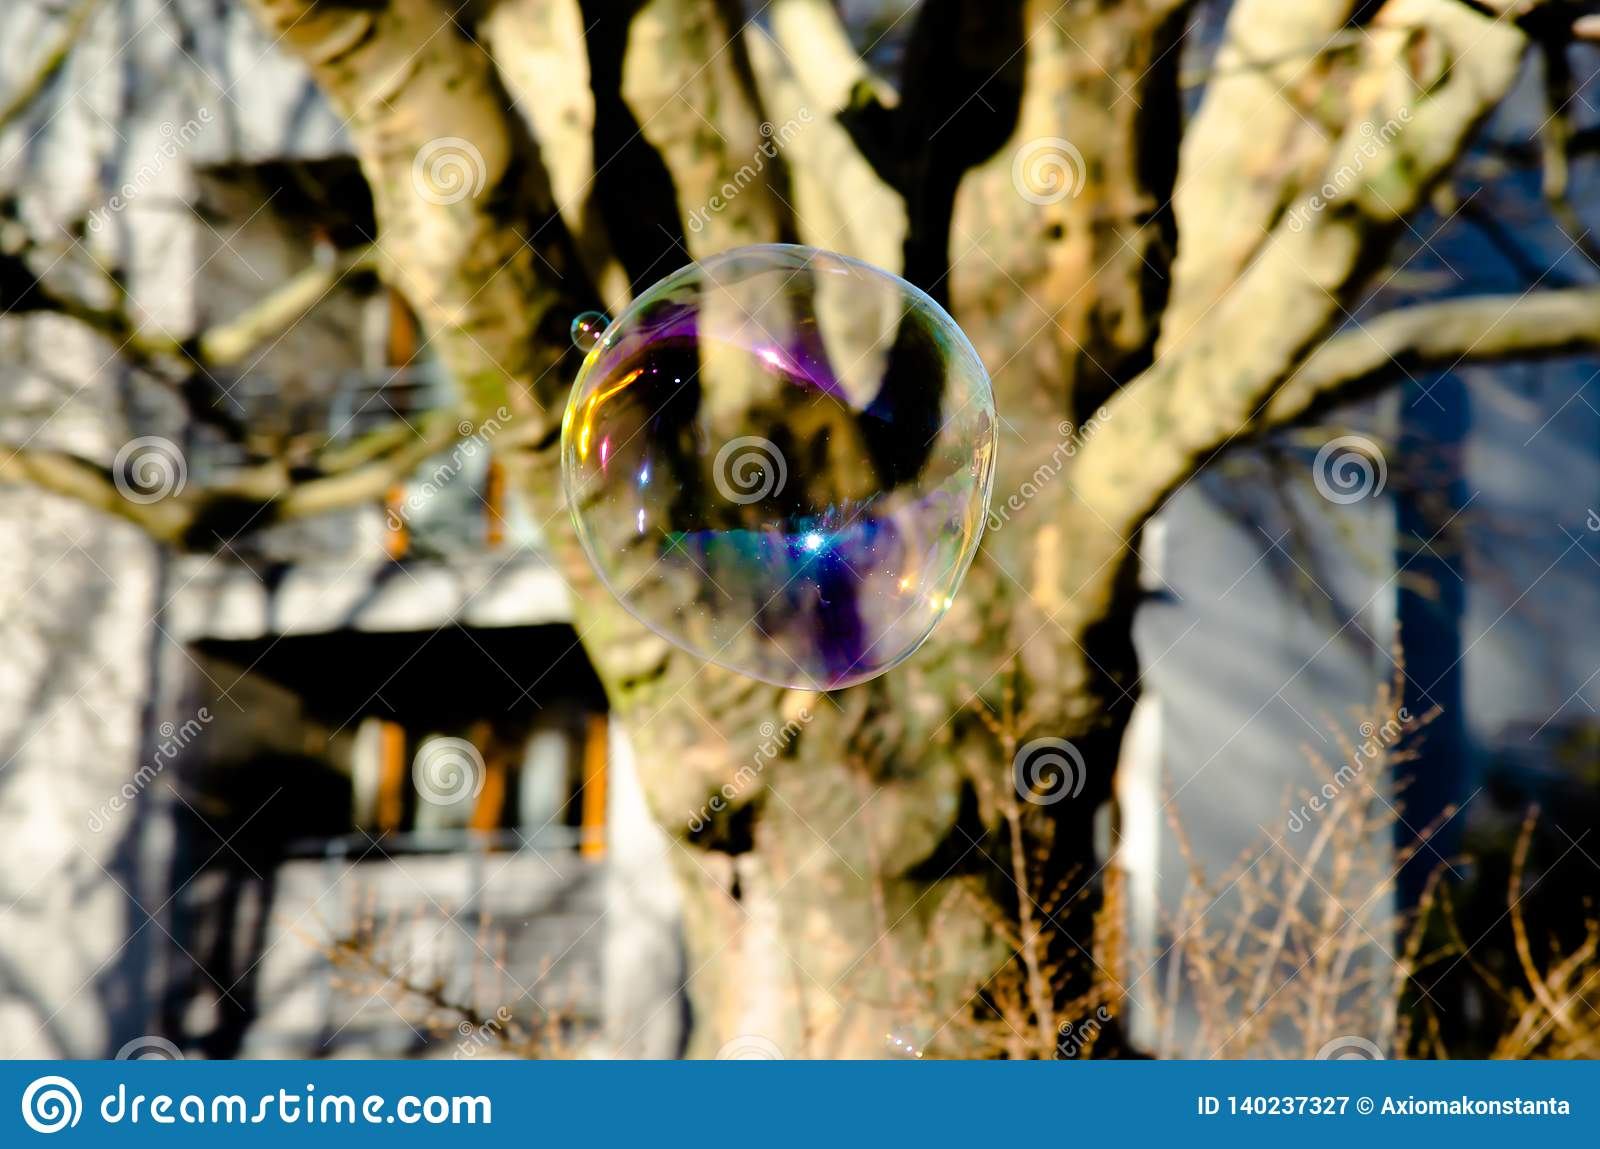 Giant flying soap bubble in city park